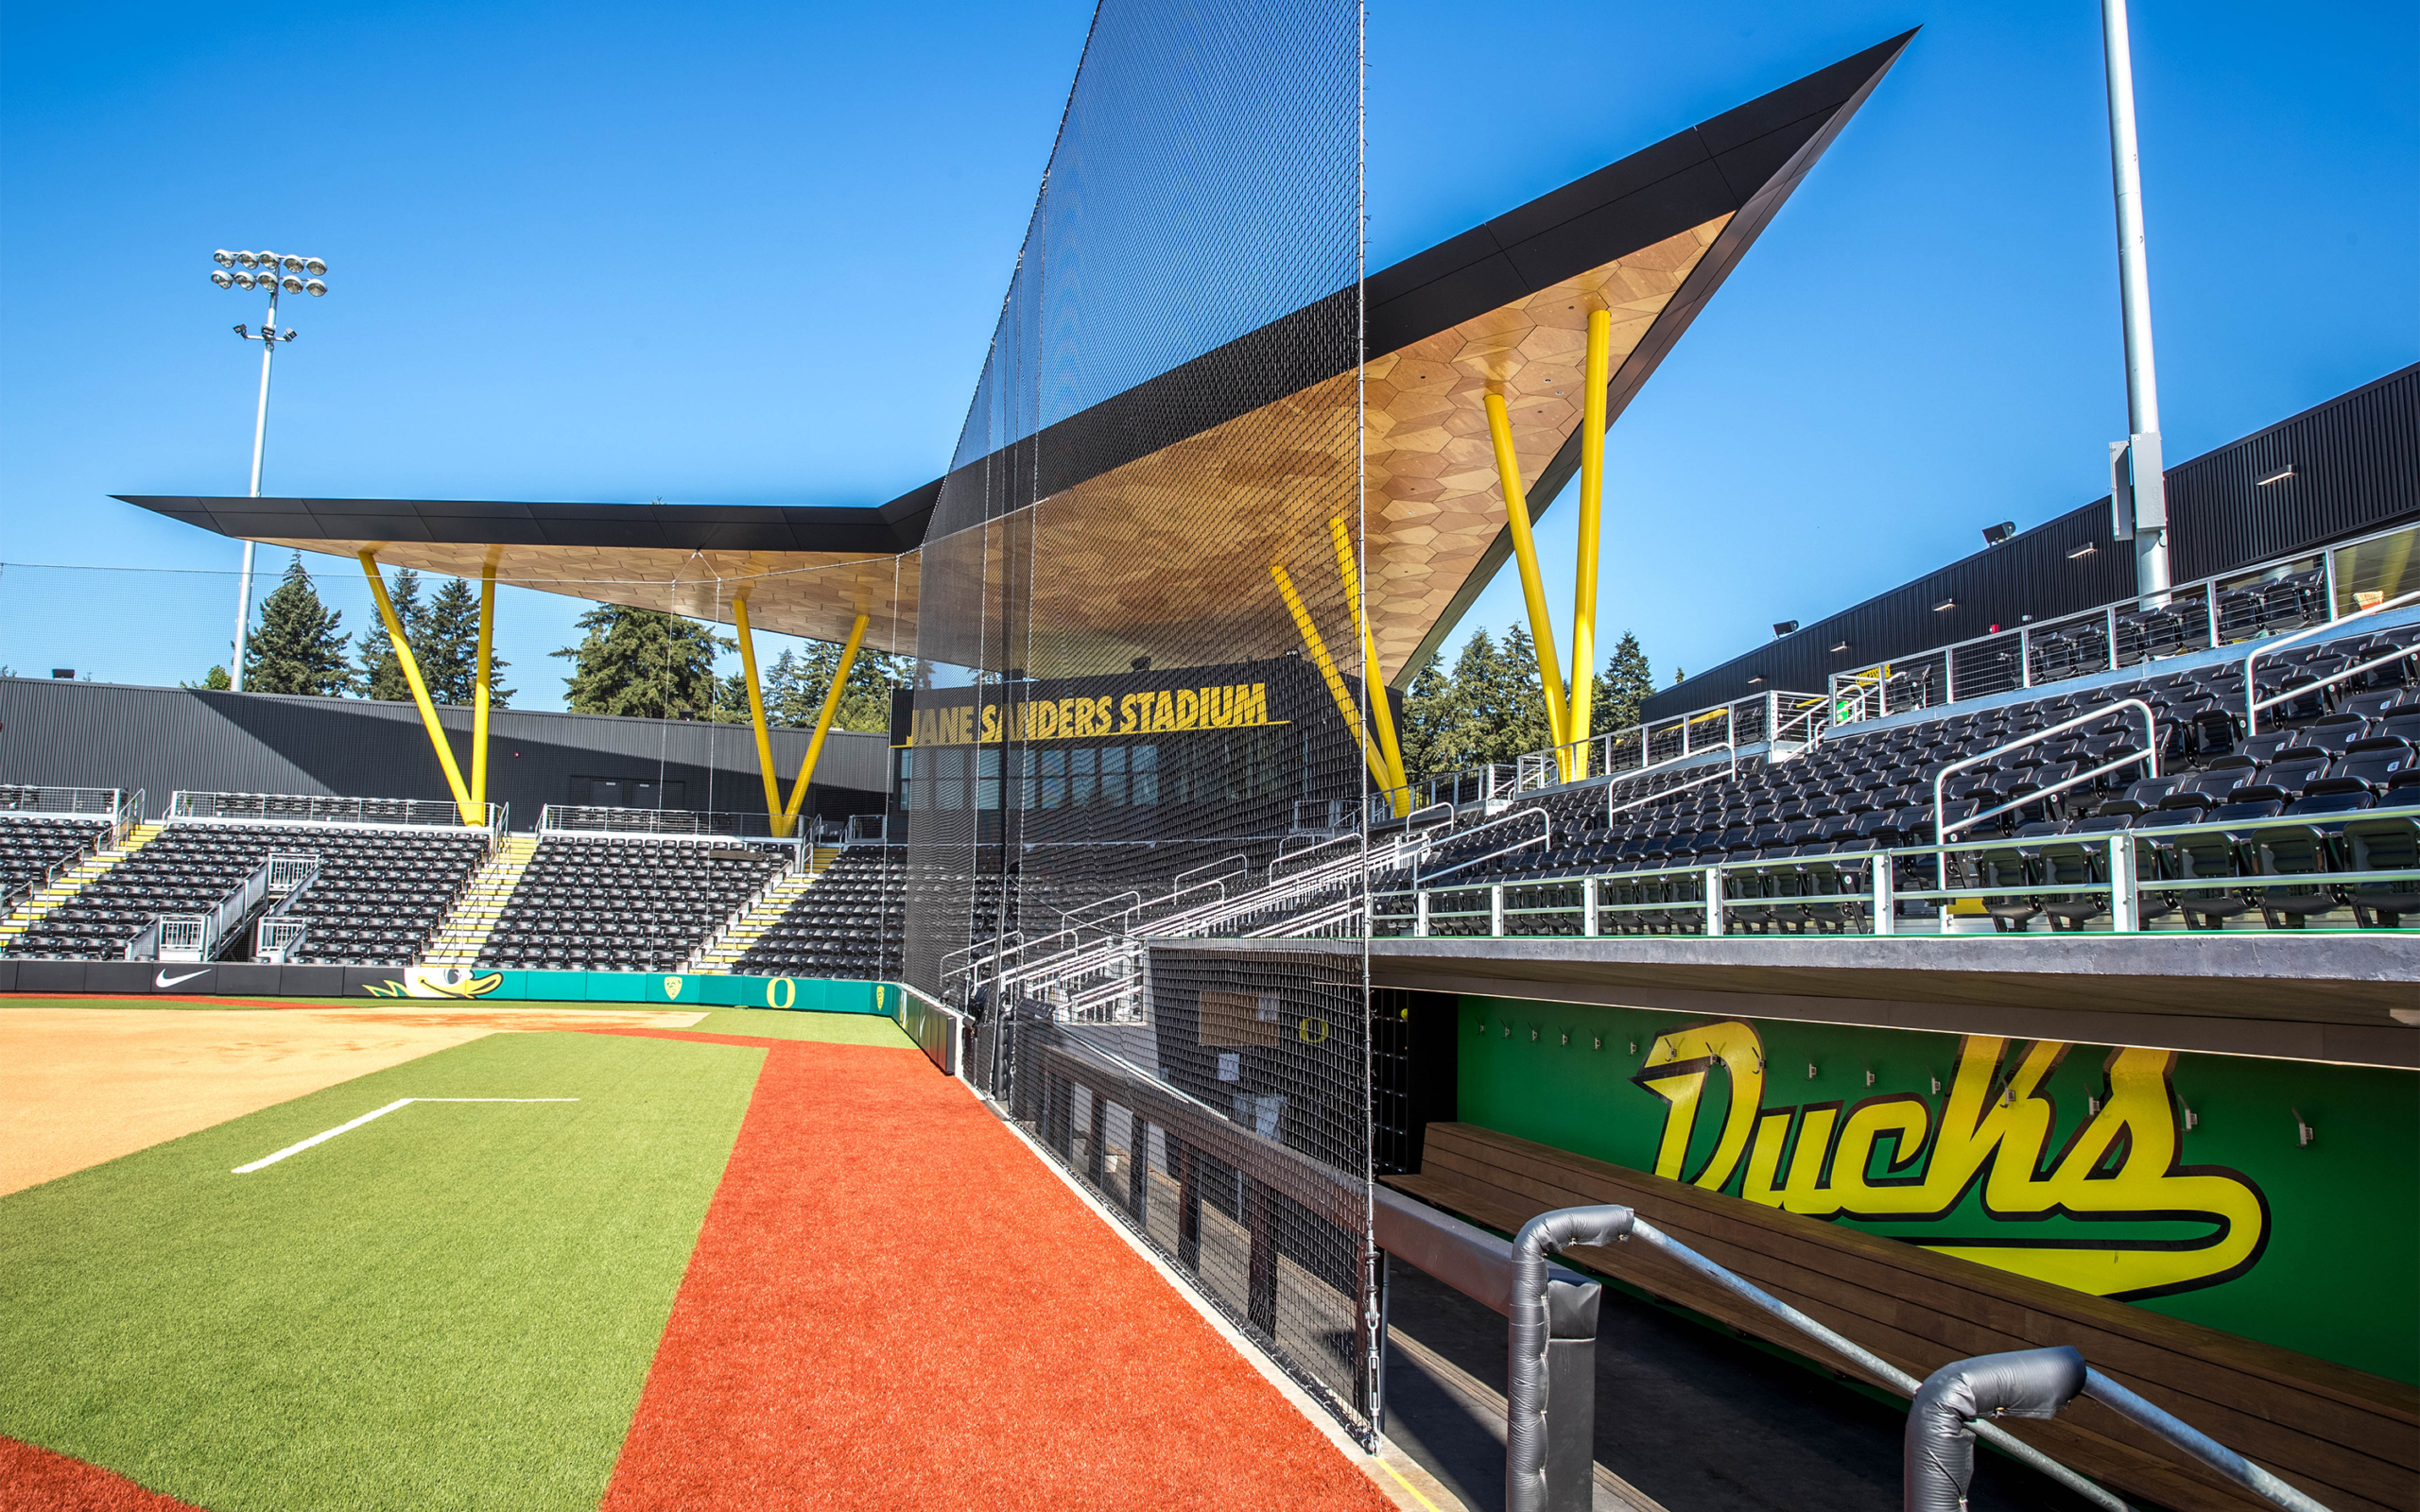 Jane Sanders Stadium dugout and stands